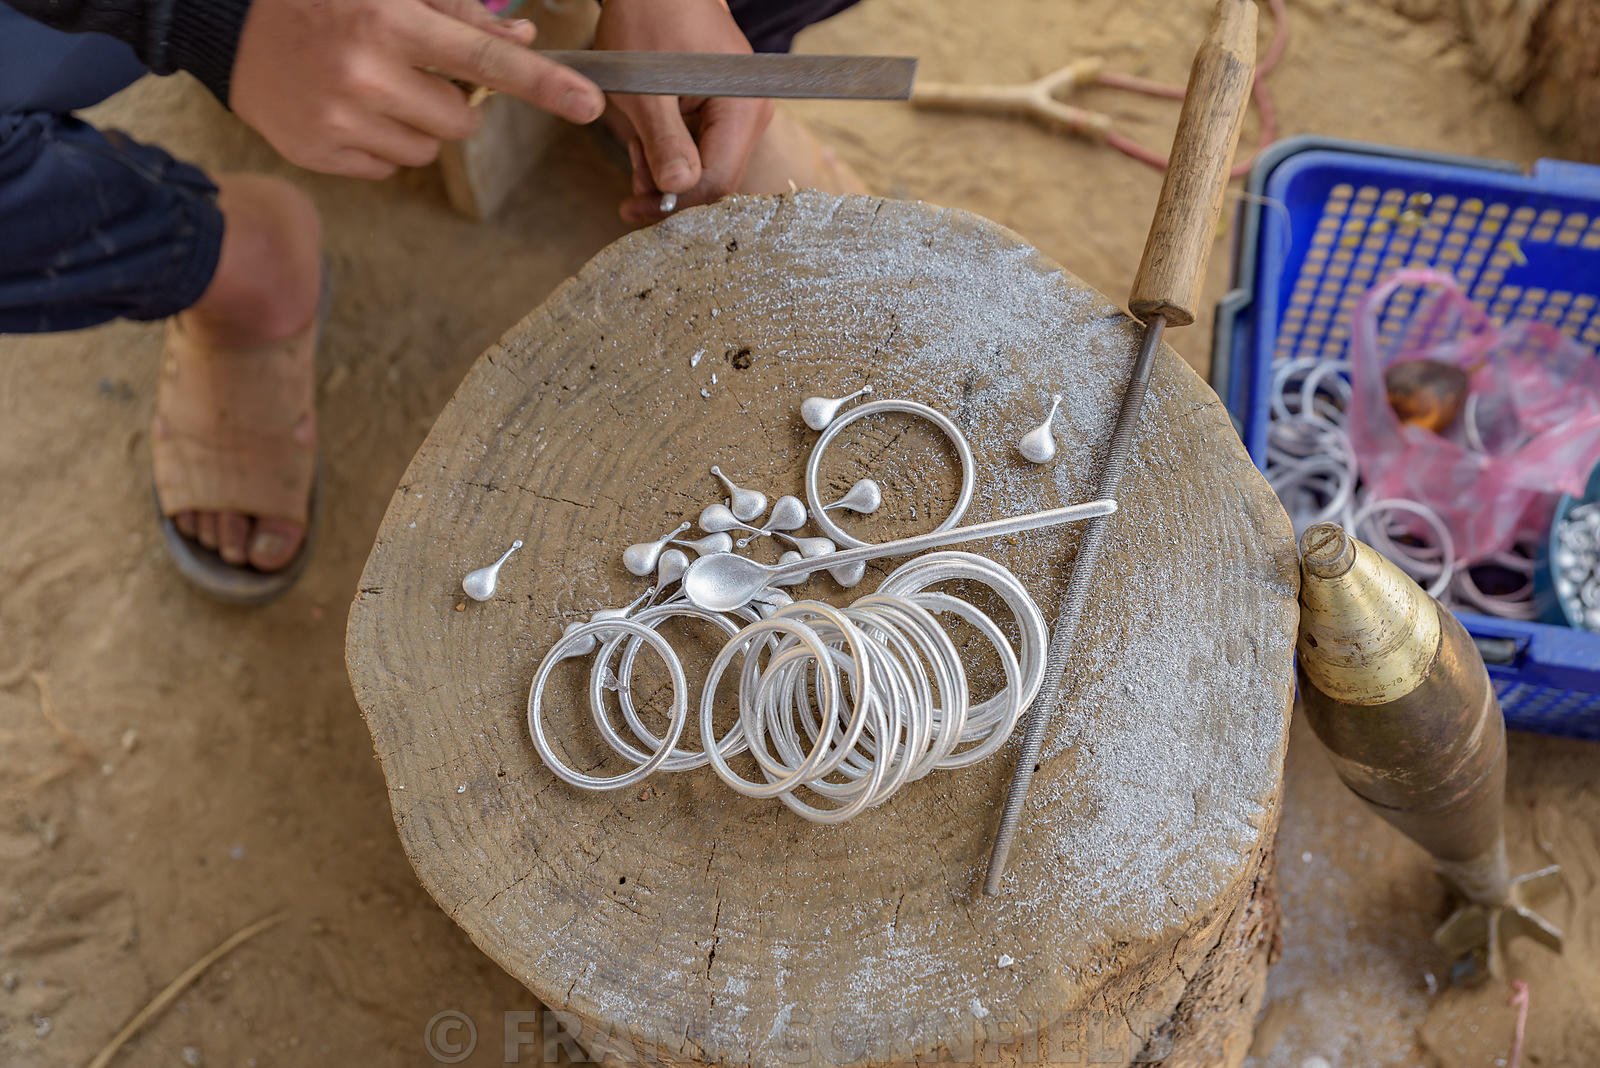 Locals in Laos make cutlery and jewellery using scrap aluminium salvaged from unexploded ordnance dropped during the U.S. sec...